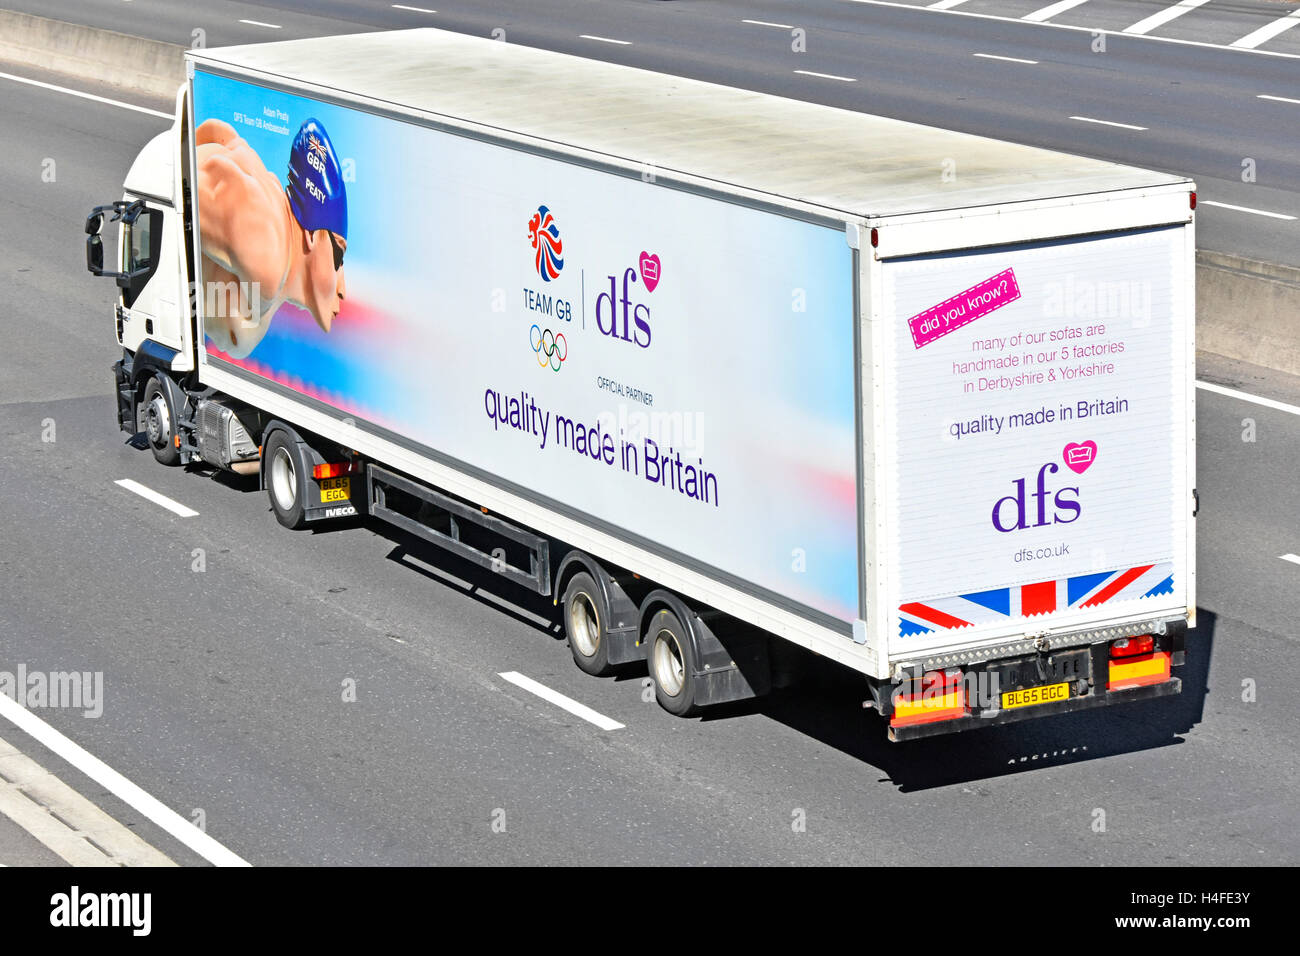 HGV Logistics Distribution Lorry Driving On UK Motorway With Articulated  Trailer Advertising Dfs Sofa Furniture Products U0026 Sponsorship Of Team GB